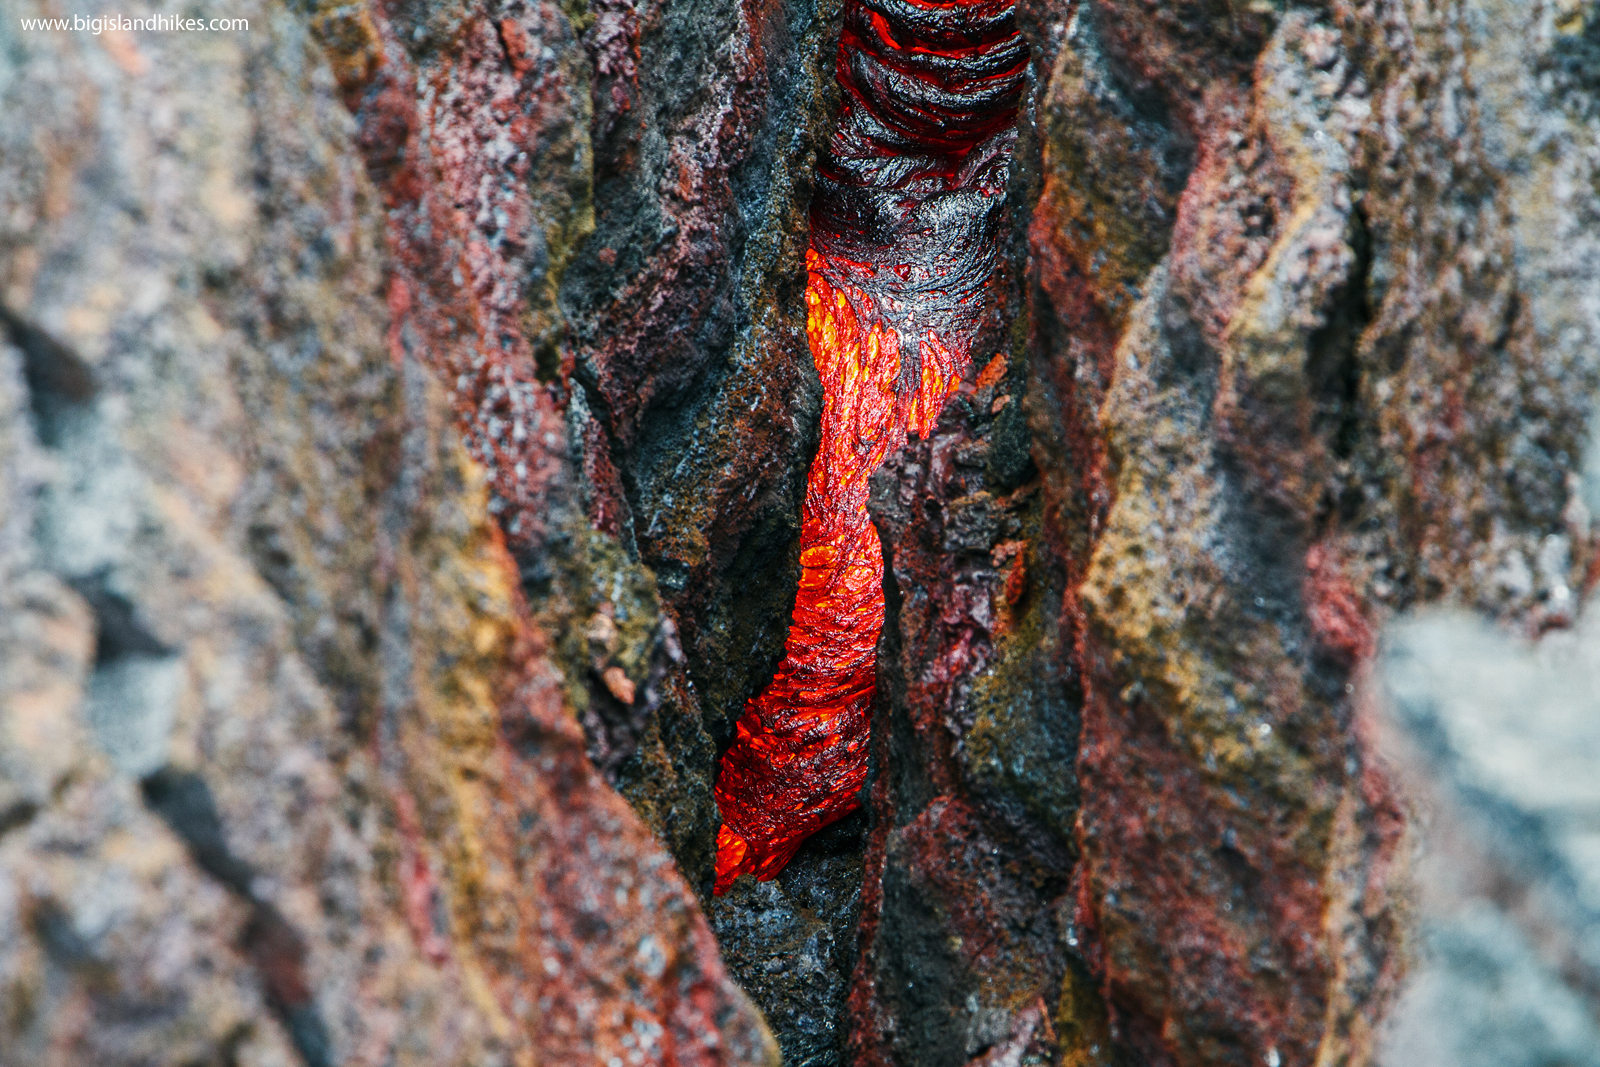 big island lava photo 6.jpg